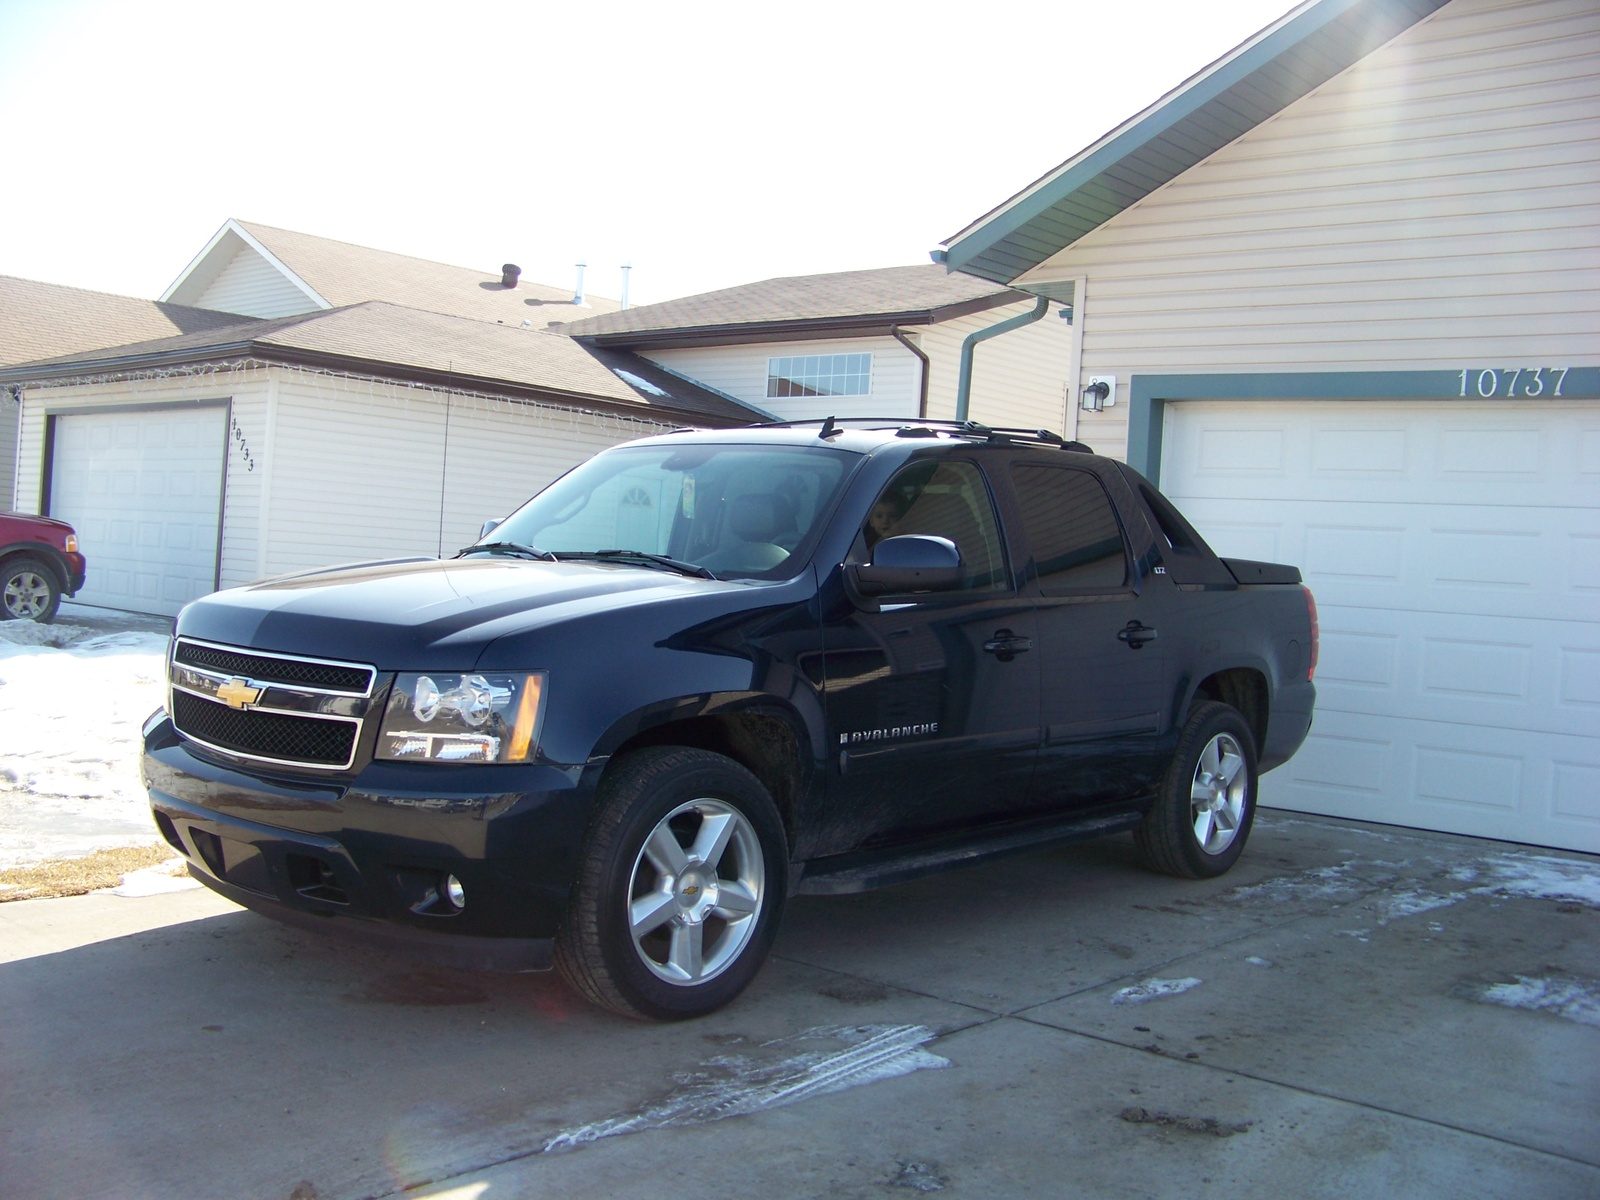 2007 chevrolet avalanche exterior pictures cargurus. Black Bedroom Furniture Sets. Home Design Ideas